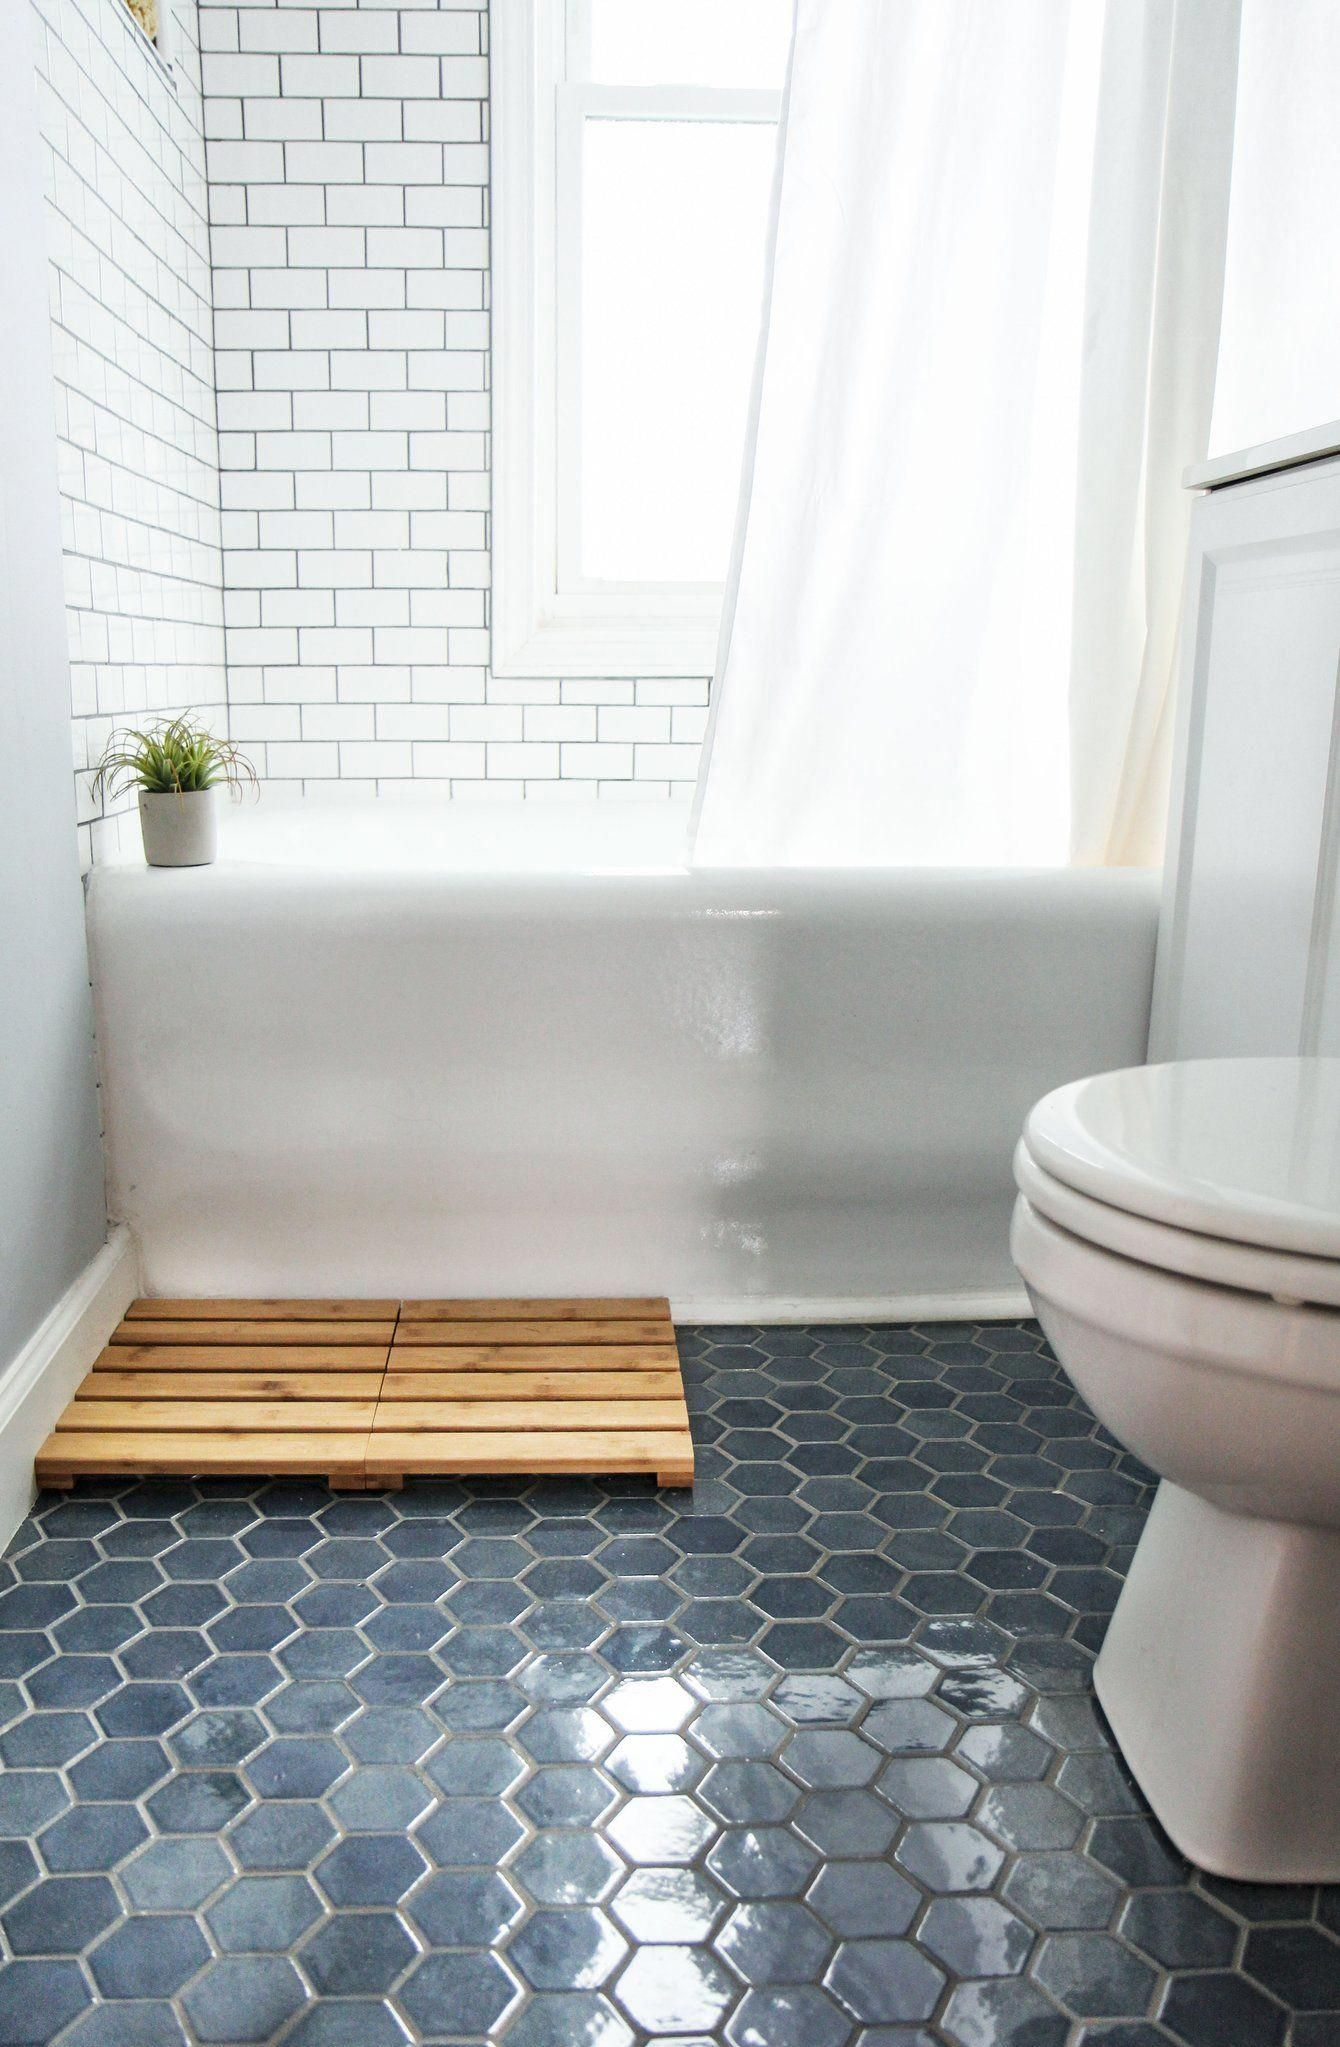 Shower Rug Idea Love This In Place Of An Actual Rug